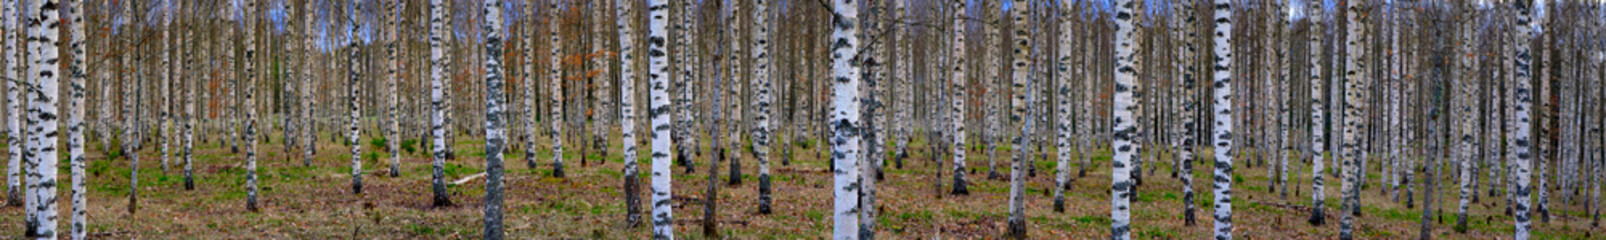 Panoramic view of birch forest